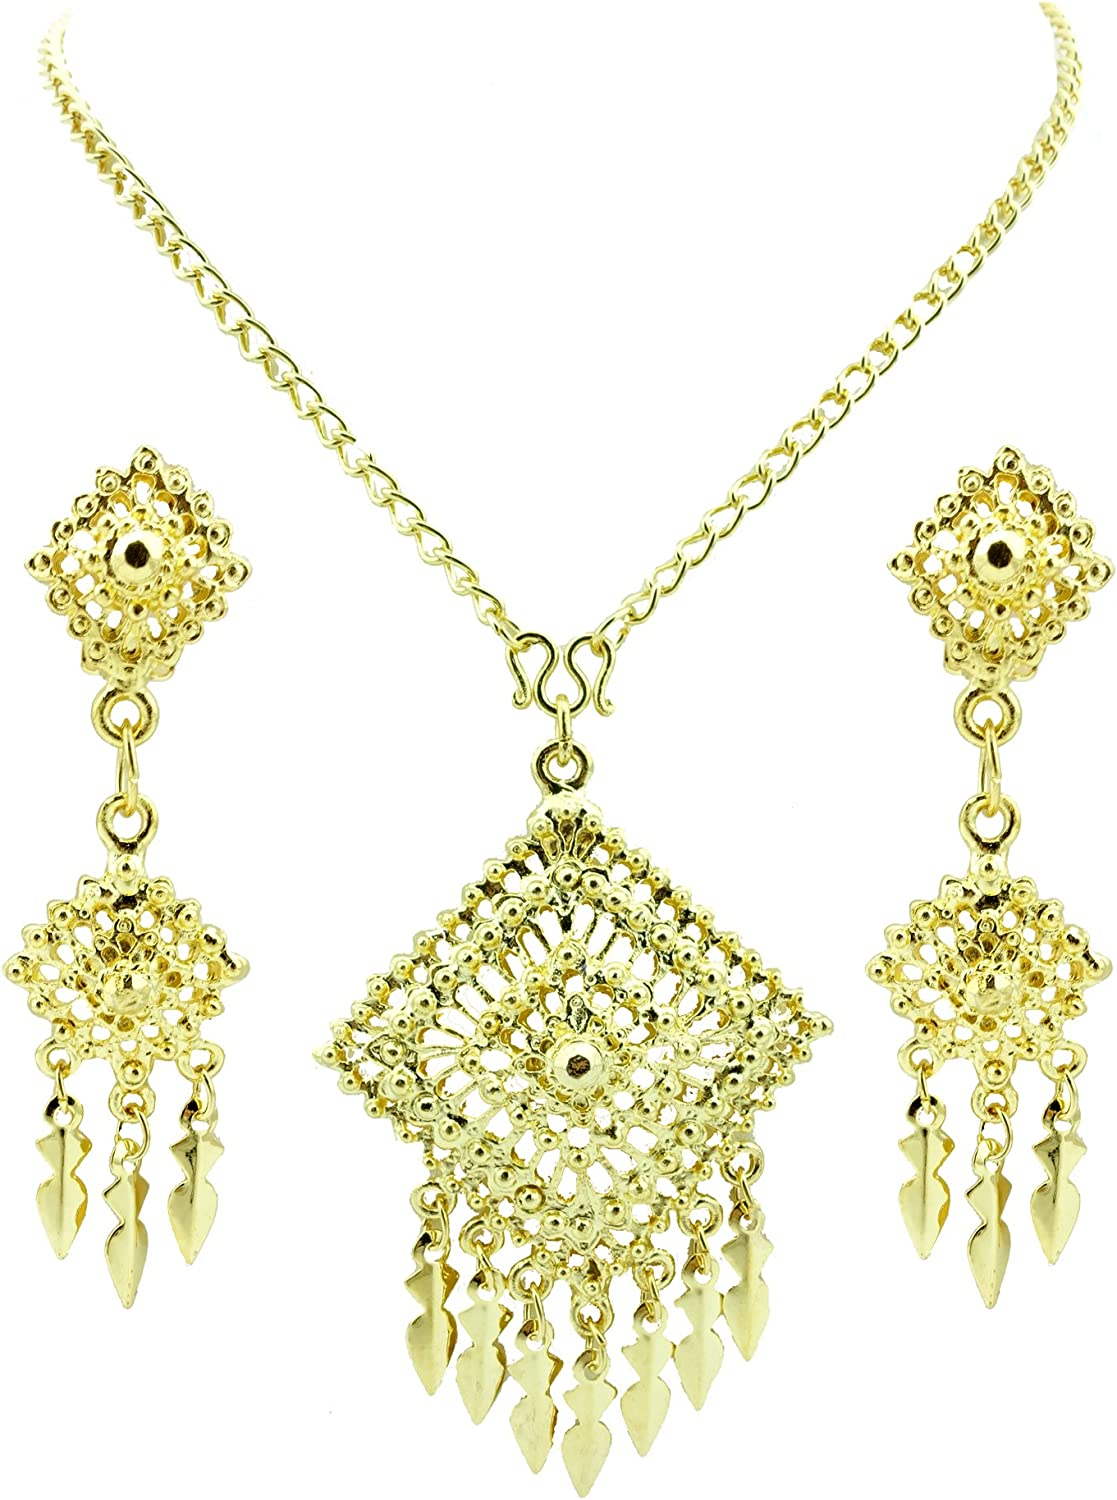 Siwalai Thai Traditional Gold Plated Necklace Earrings Bracelet Jewelry Set 20 Inches